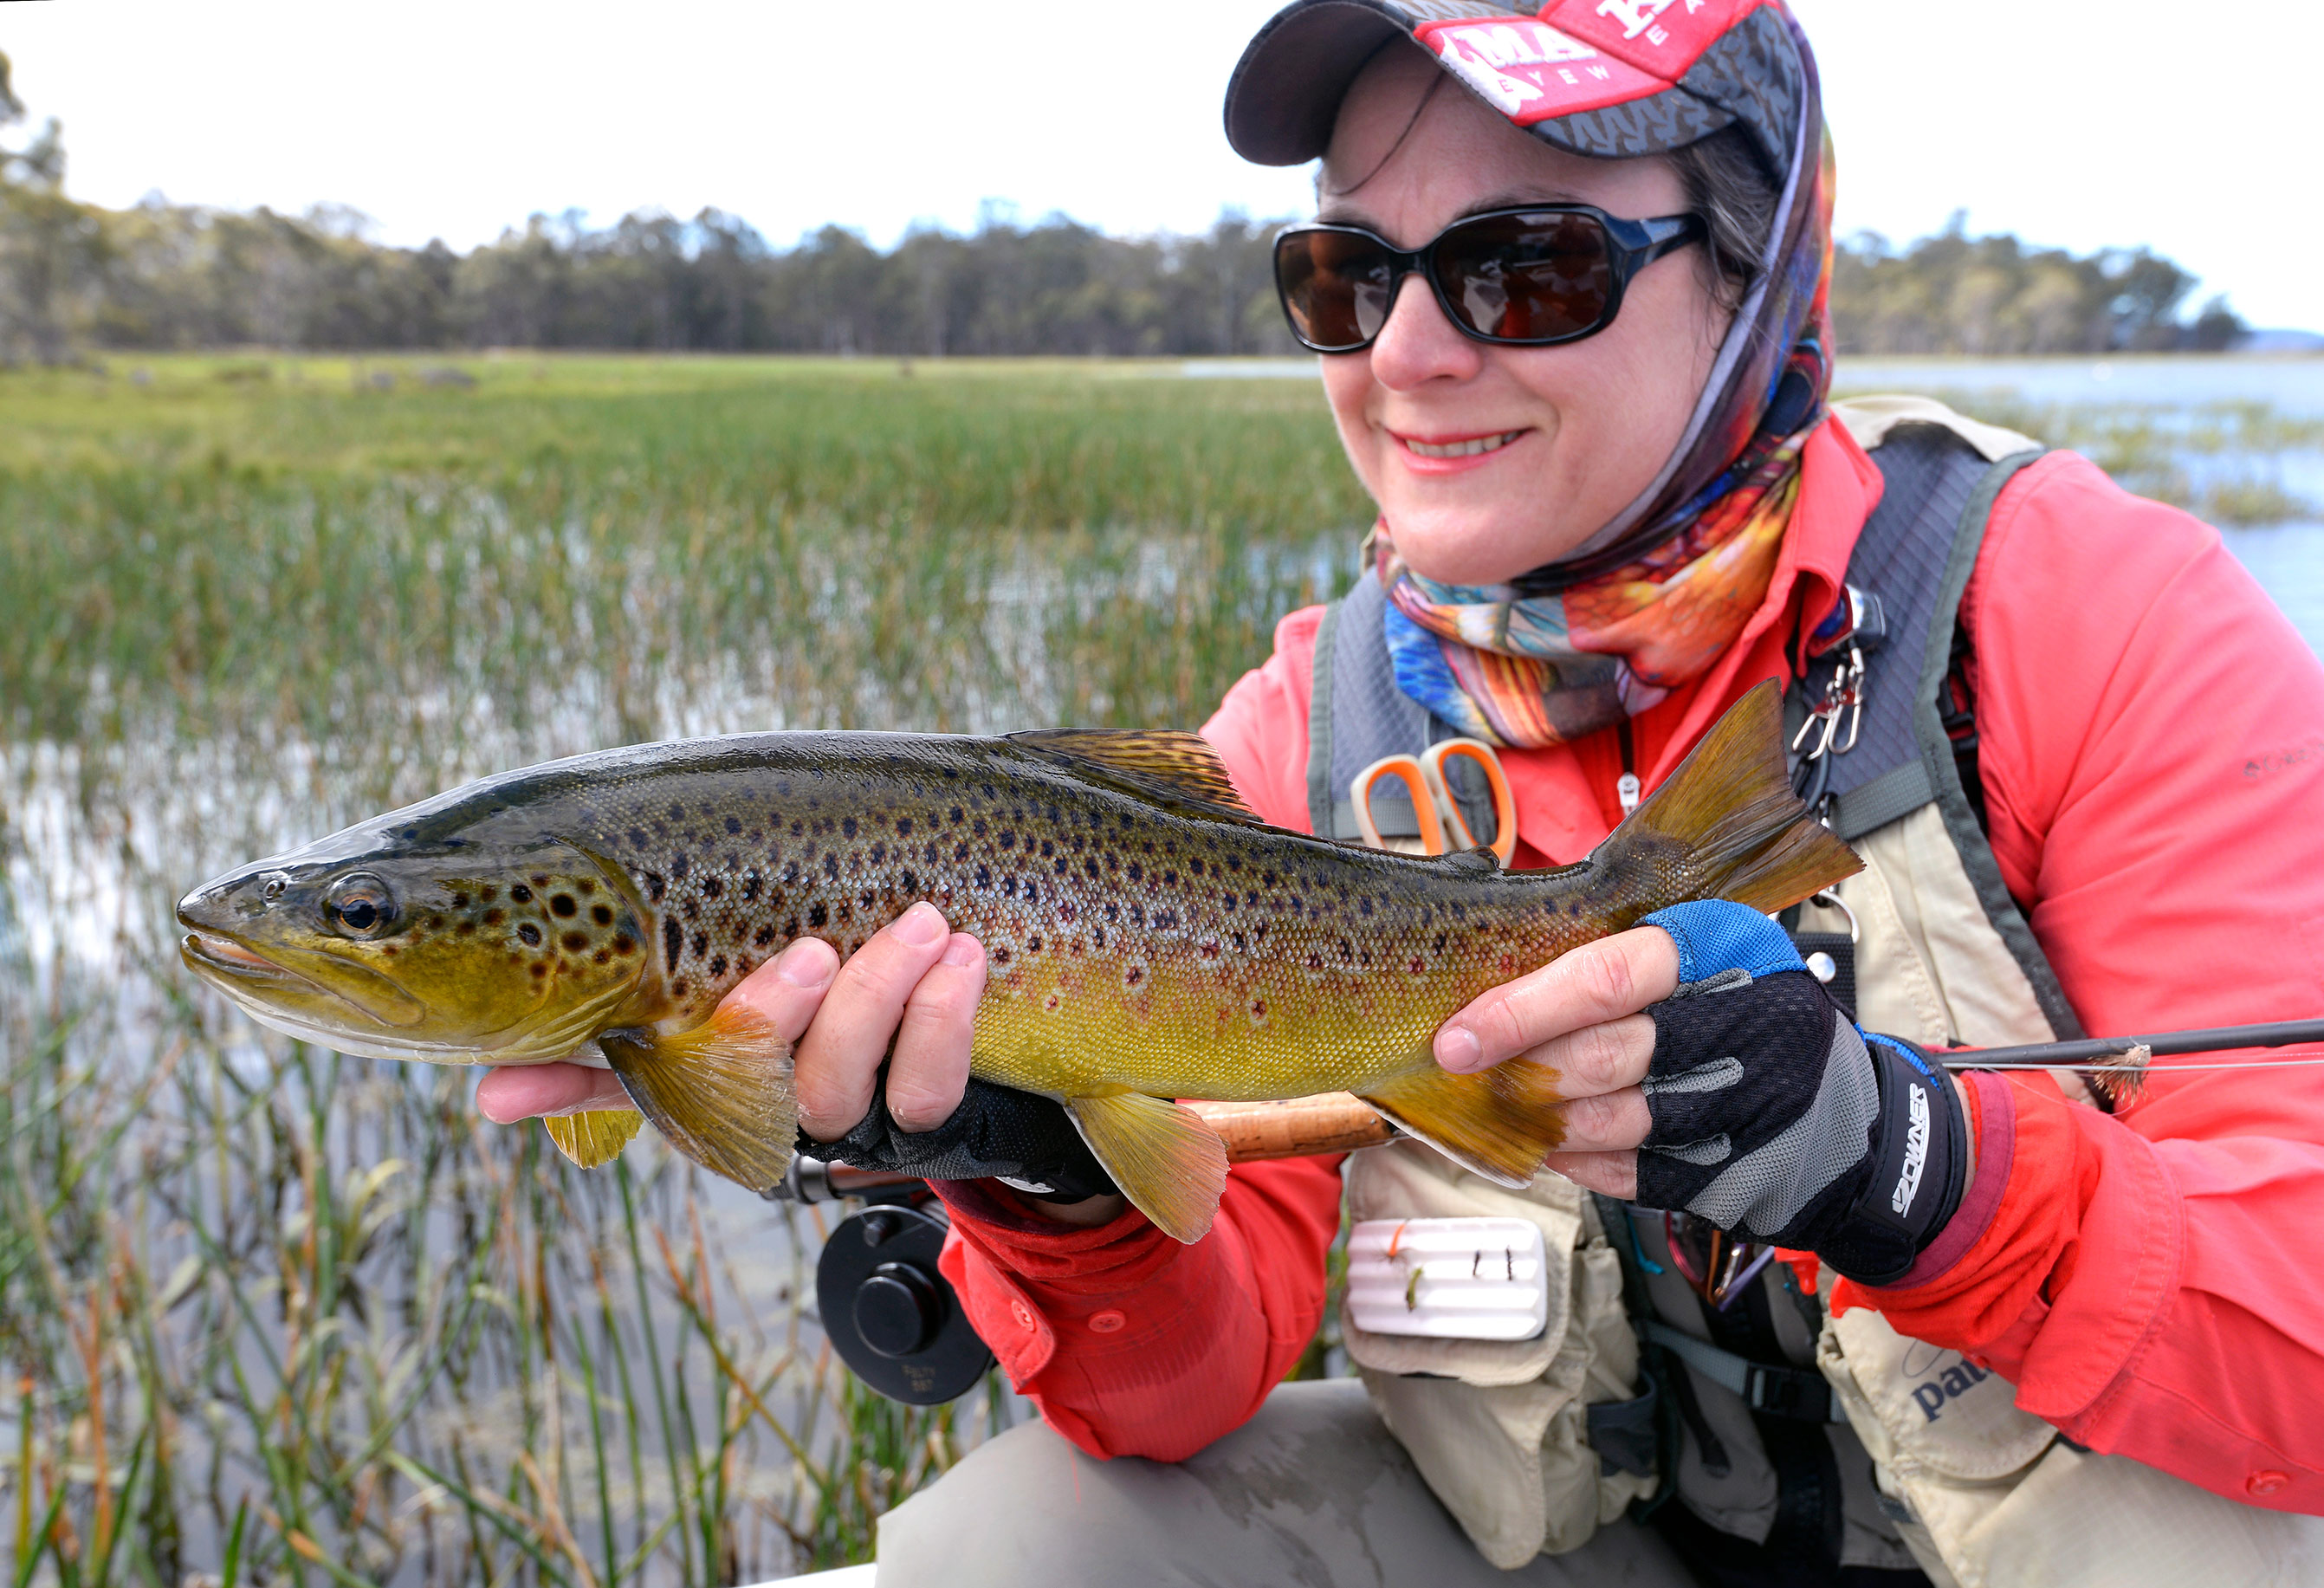 Jo with a lovely Penstock brownie taken in the margins on a single dry fly presented on a long, fine tippet.